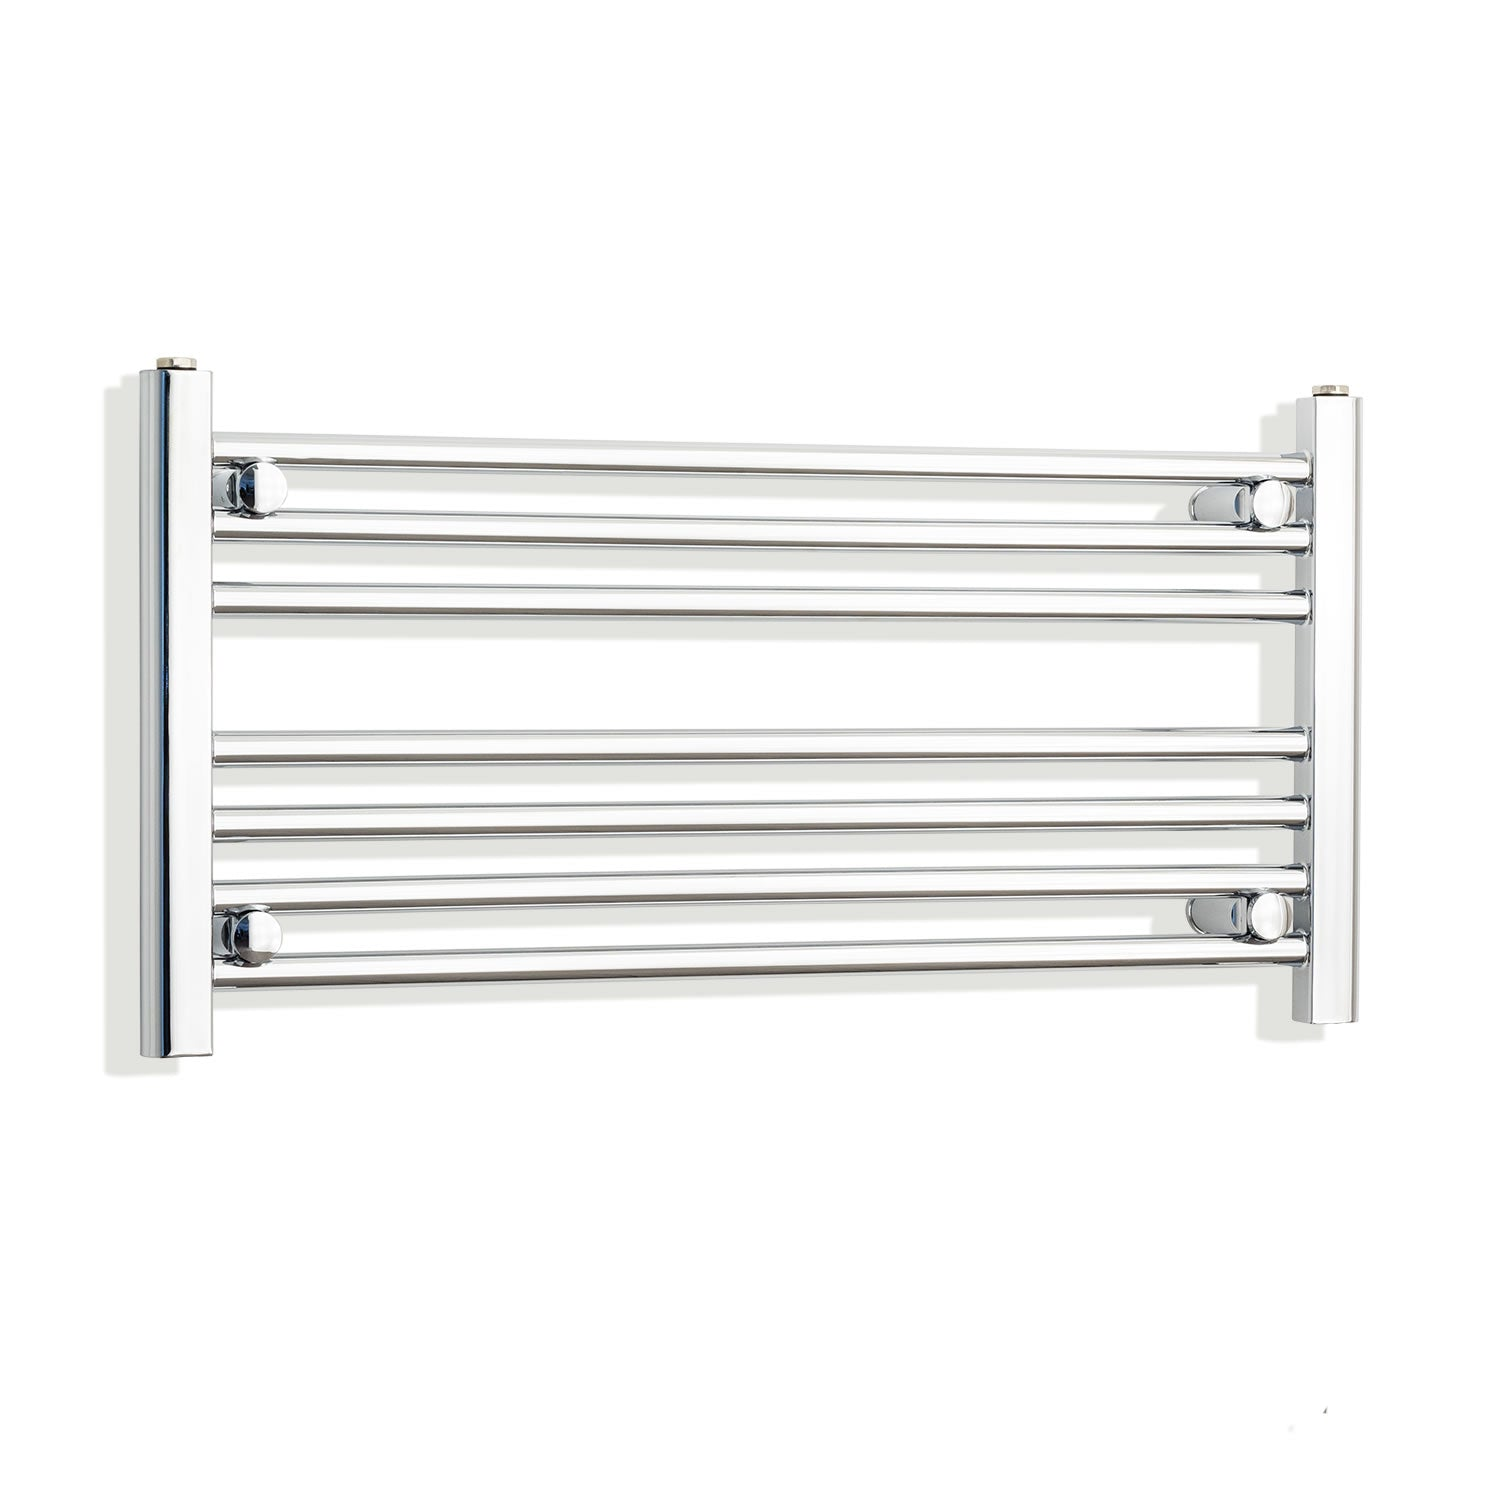 750mm Wide 400mm High Curved Chrome Heated Towel Rail Radiator HTR,Towel Rail Only